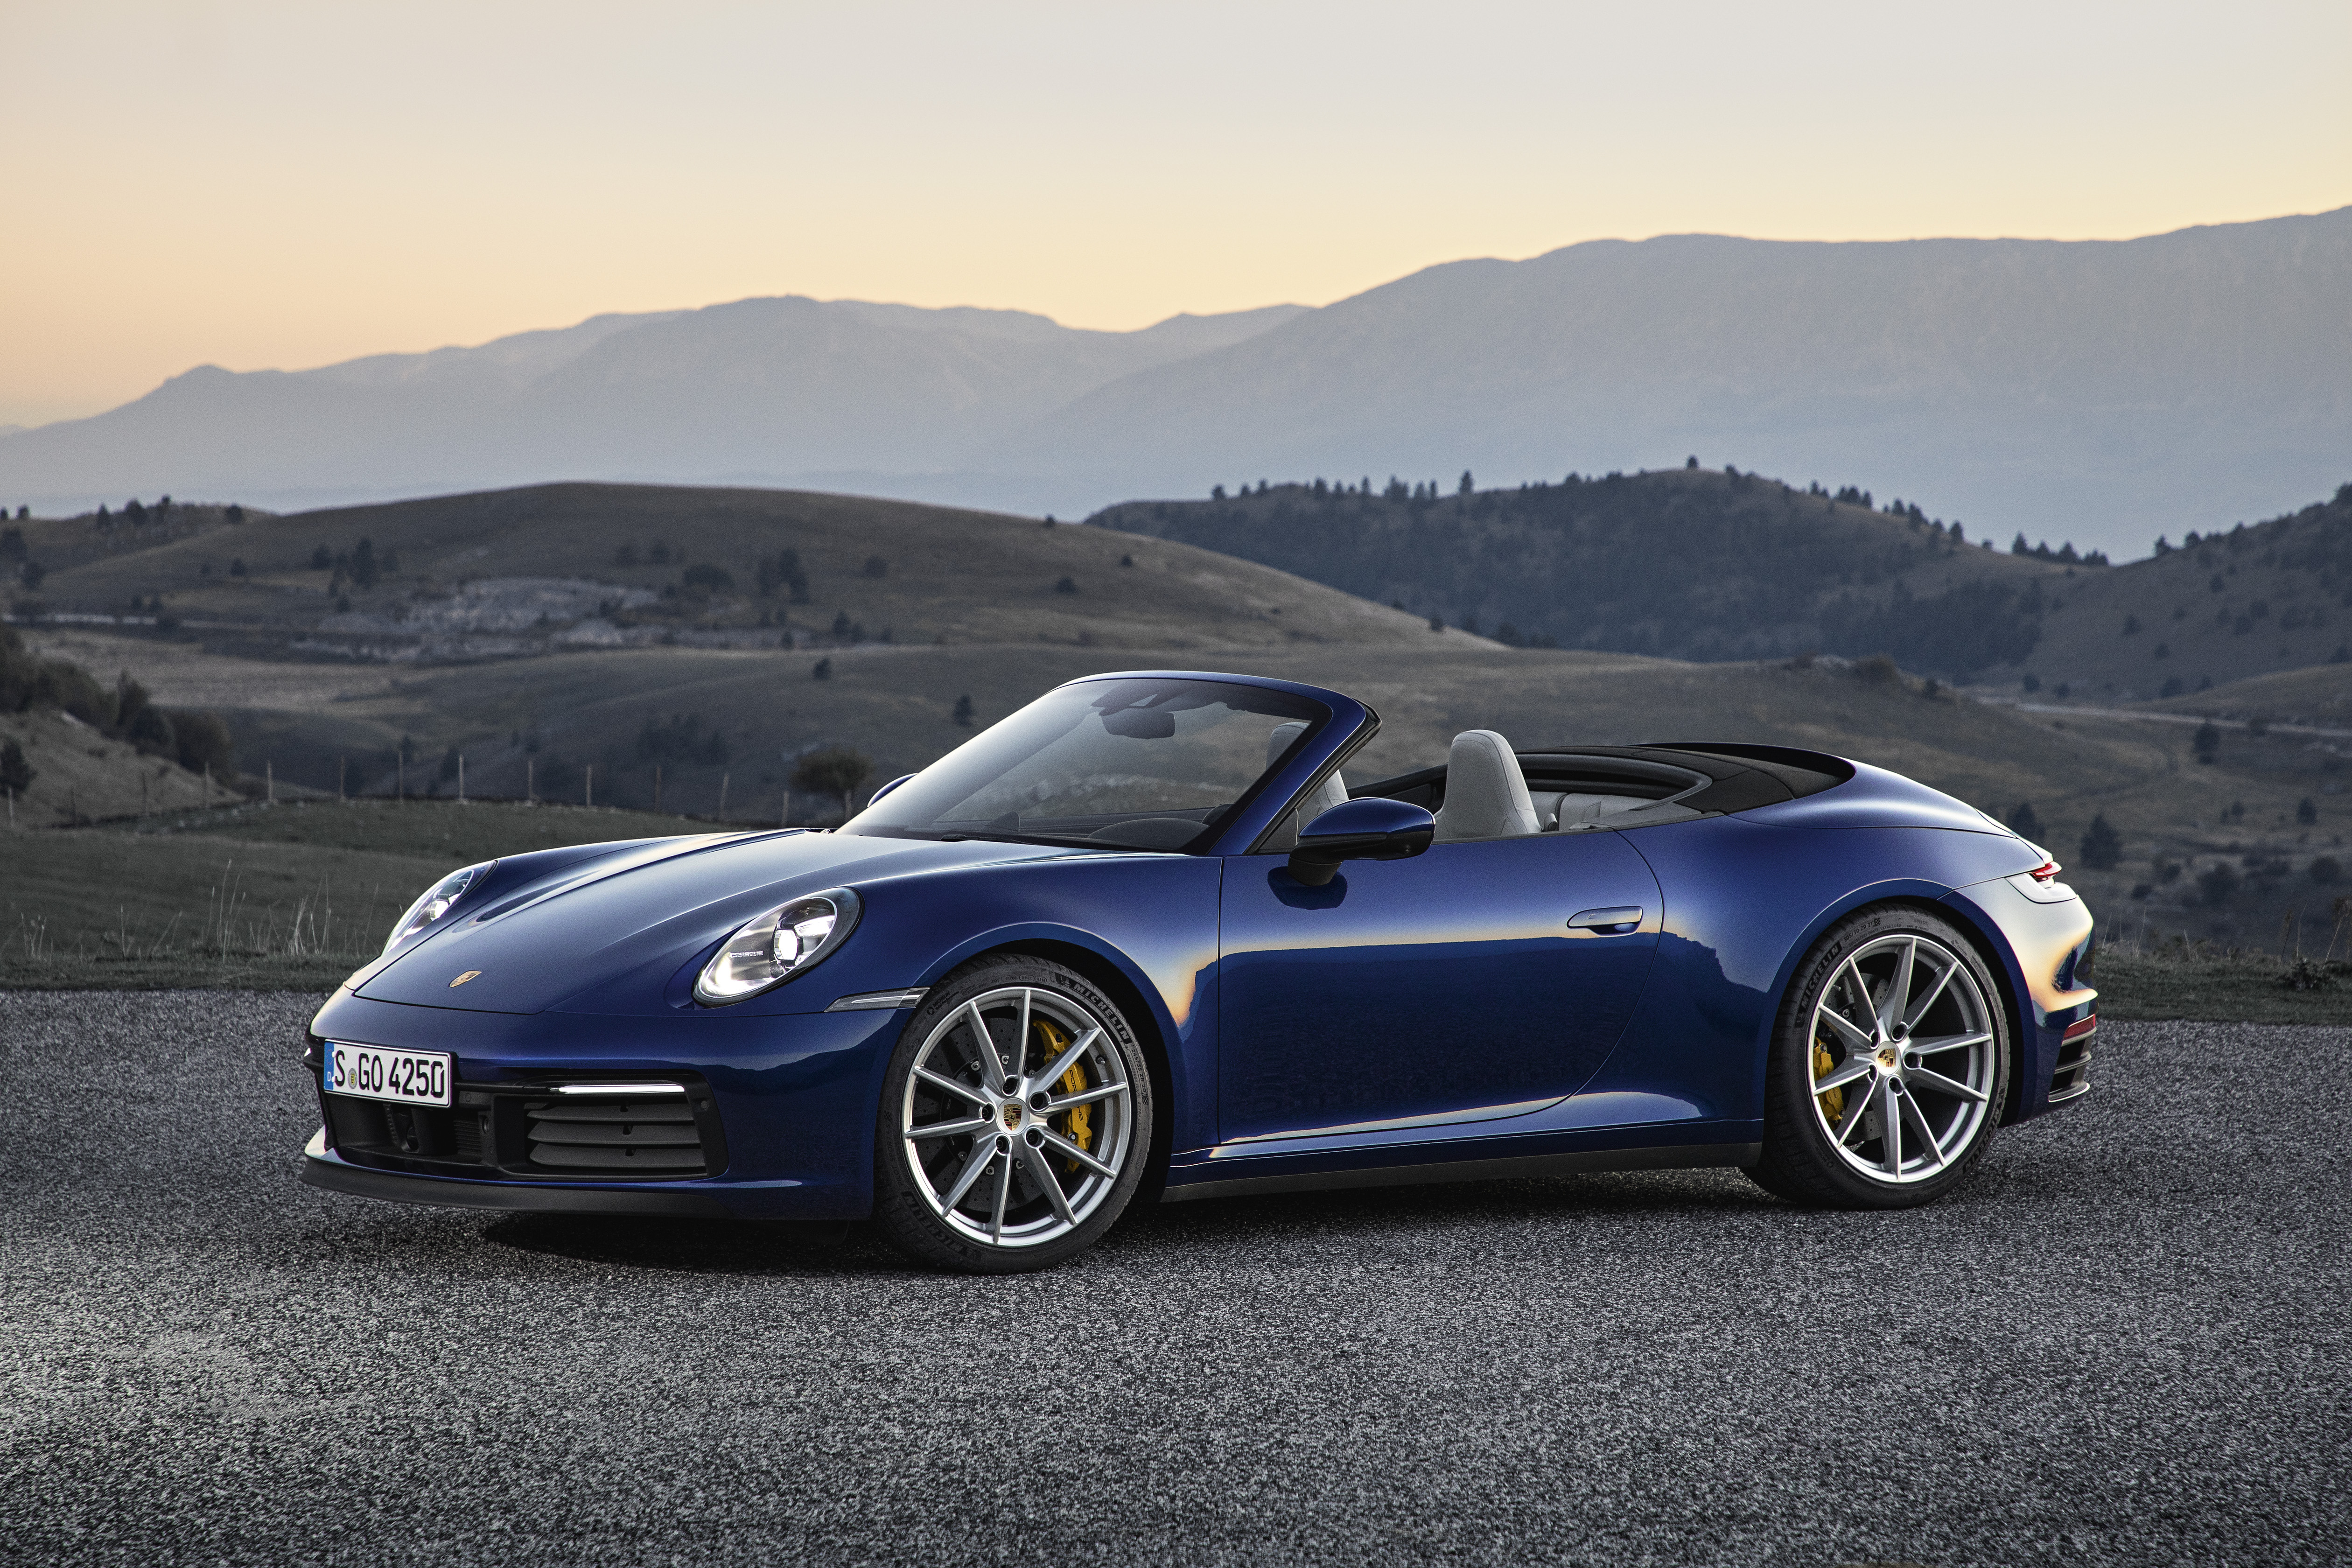 2019 Porsche 911 Carrera 4s Cabriolet Hd Cars 4k Wallpapers Images Backgrounds Photos And Pictures Porsche 911 carrera 4s 2019 5k